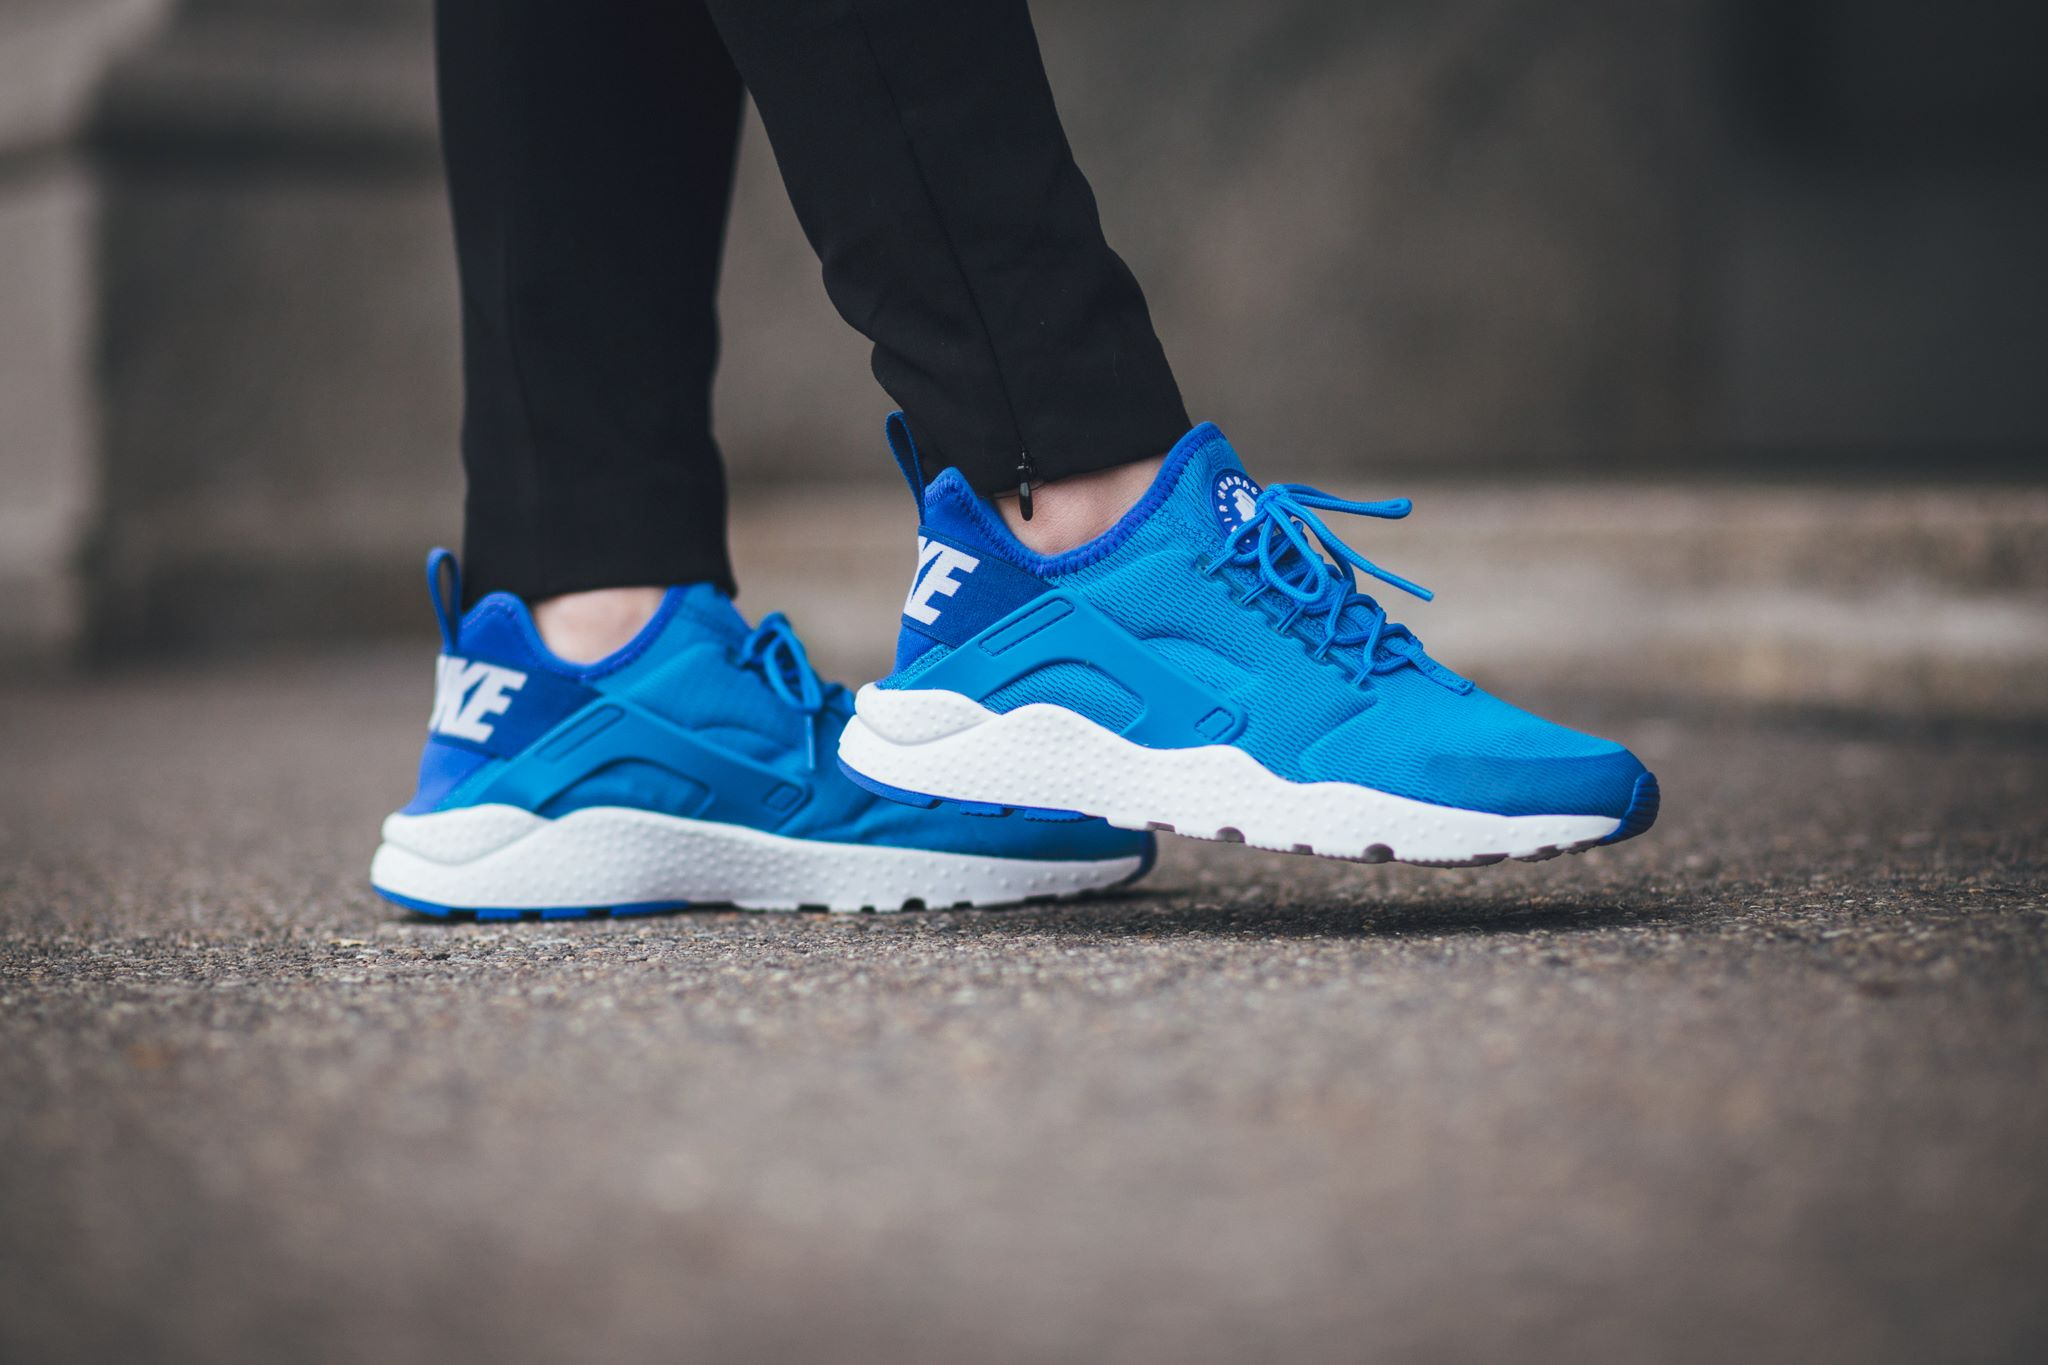 the best attitude 07a81 6662a Introduced earlier this month, the Nike Air Huarache Ultra which are  specifically crafted for females, is highlighted in this vibrant Photo Blue  finish.